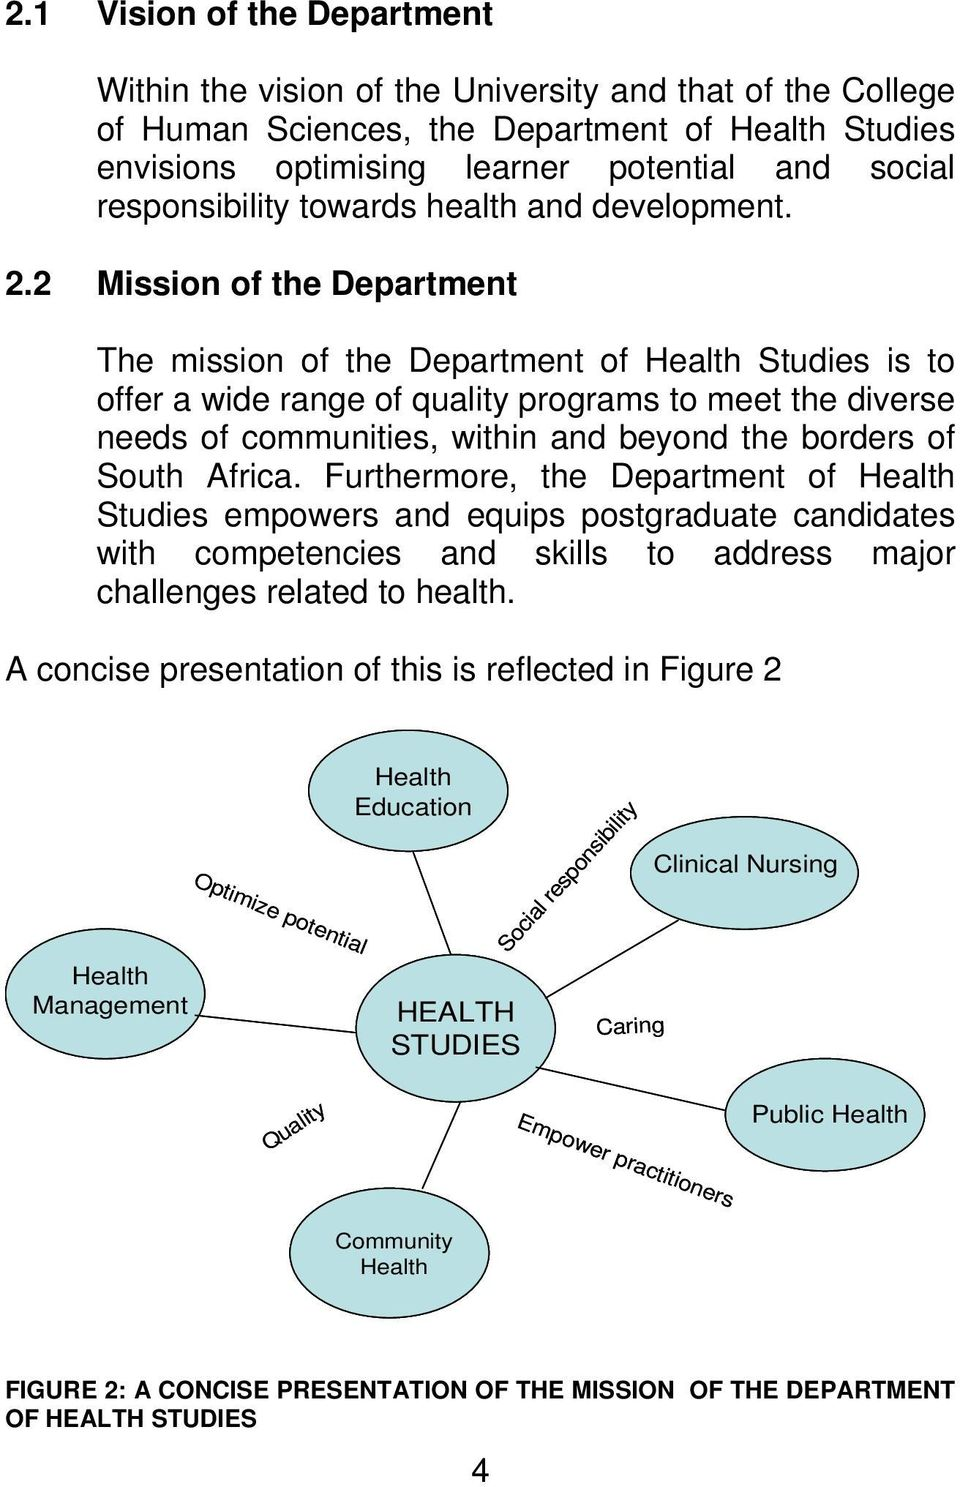 2 Mission of the Department The mission of the Department of Health Studies is to offer a wide range of quality programs to meet the diverse needs of communities, within and beyond the borders of